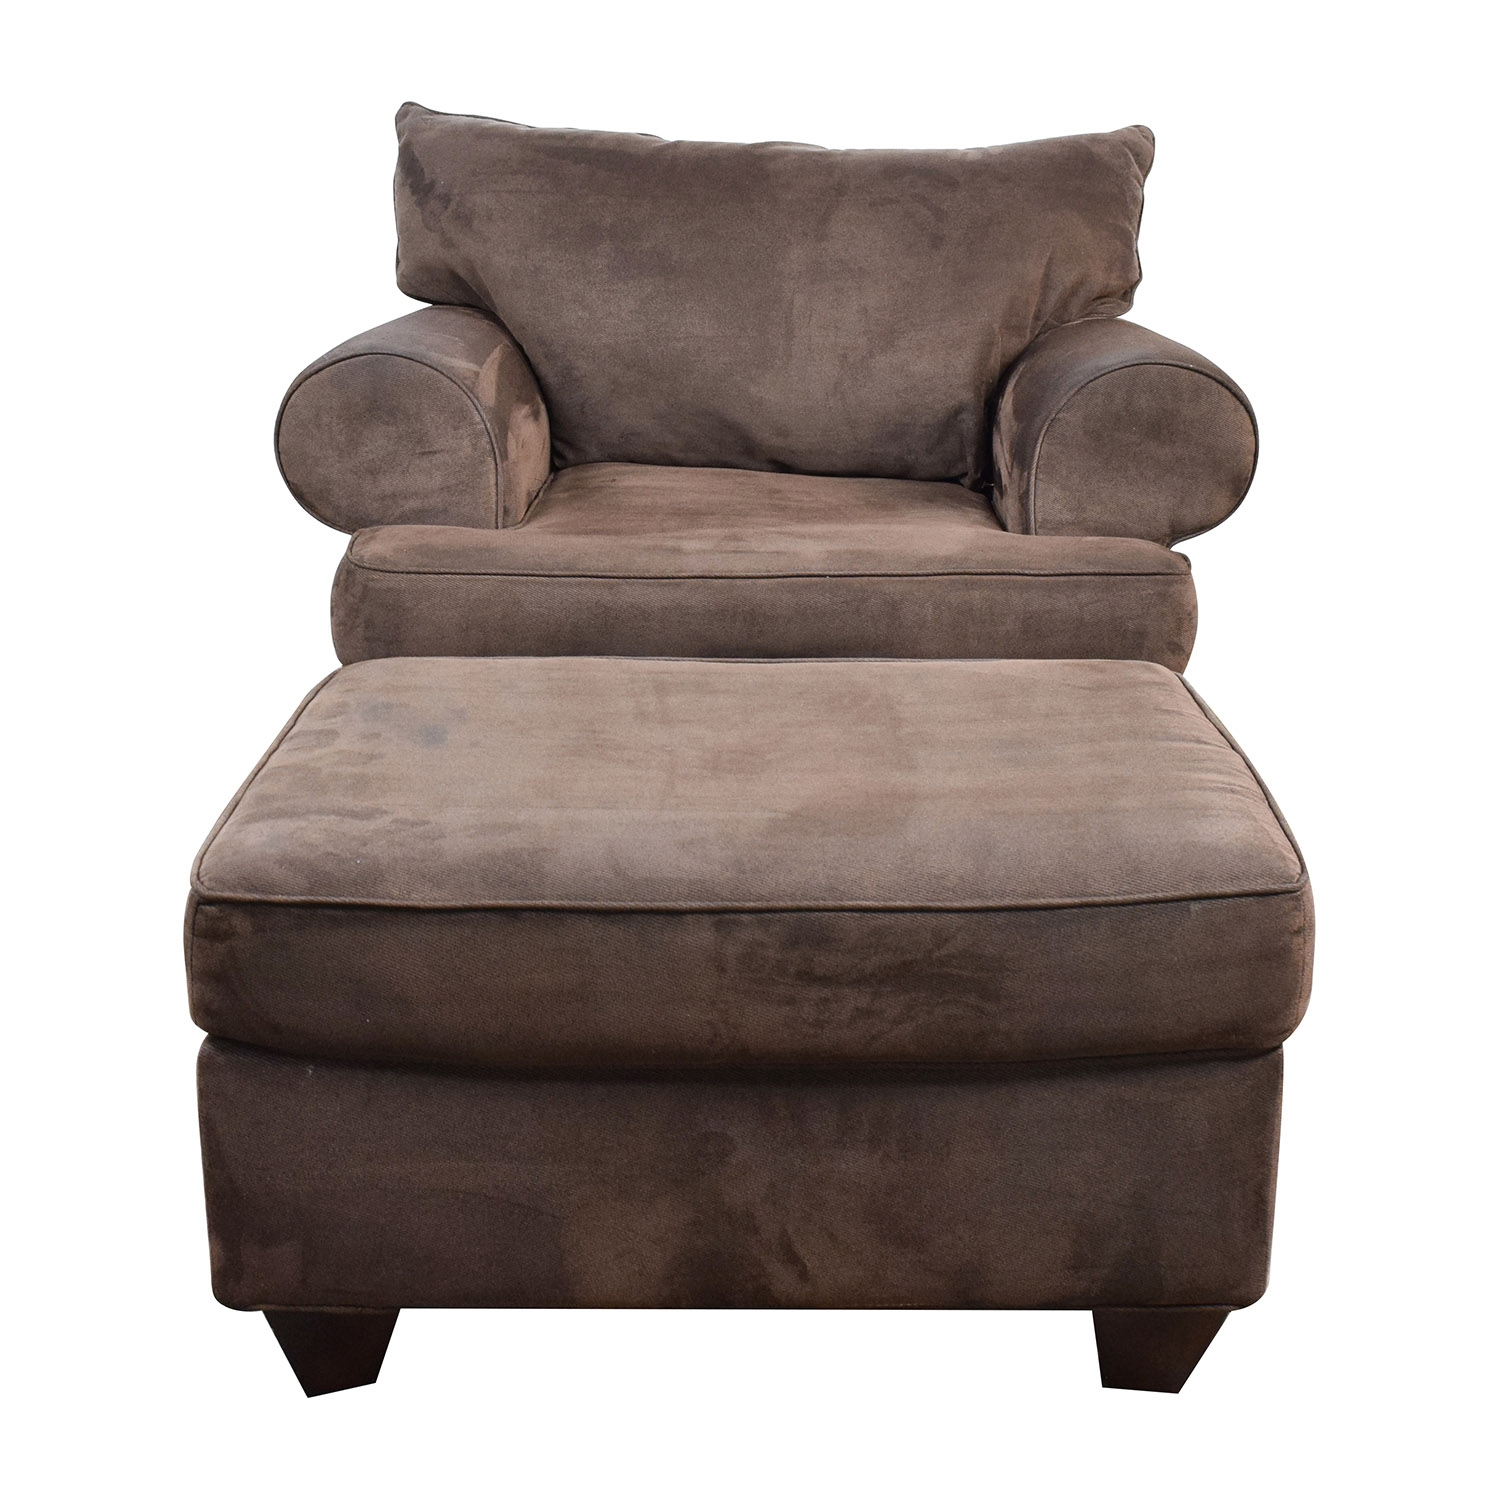 67 Off Dark Brown Sofa Chair With Ottoman Chairs Within Sofa Chair And Ottoman (Image 1 of 15)